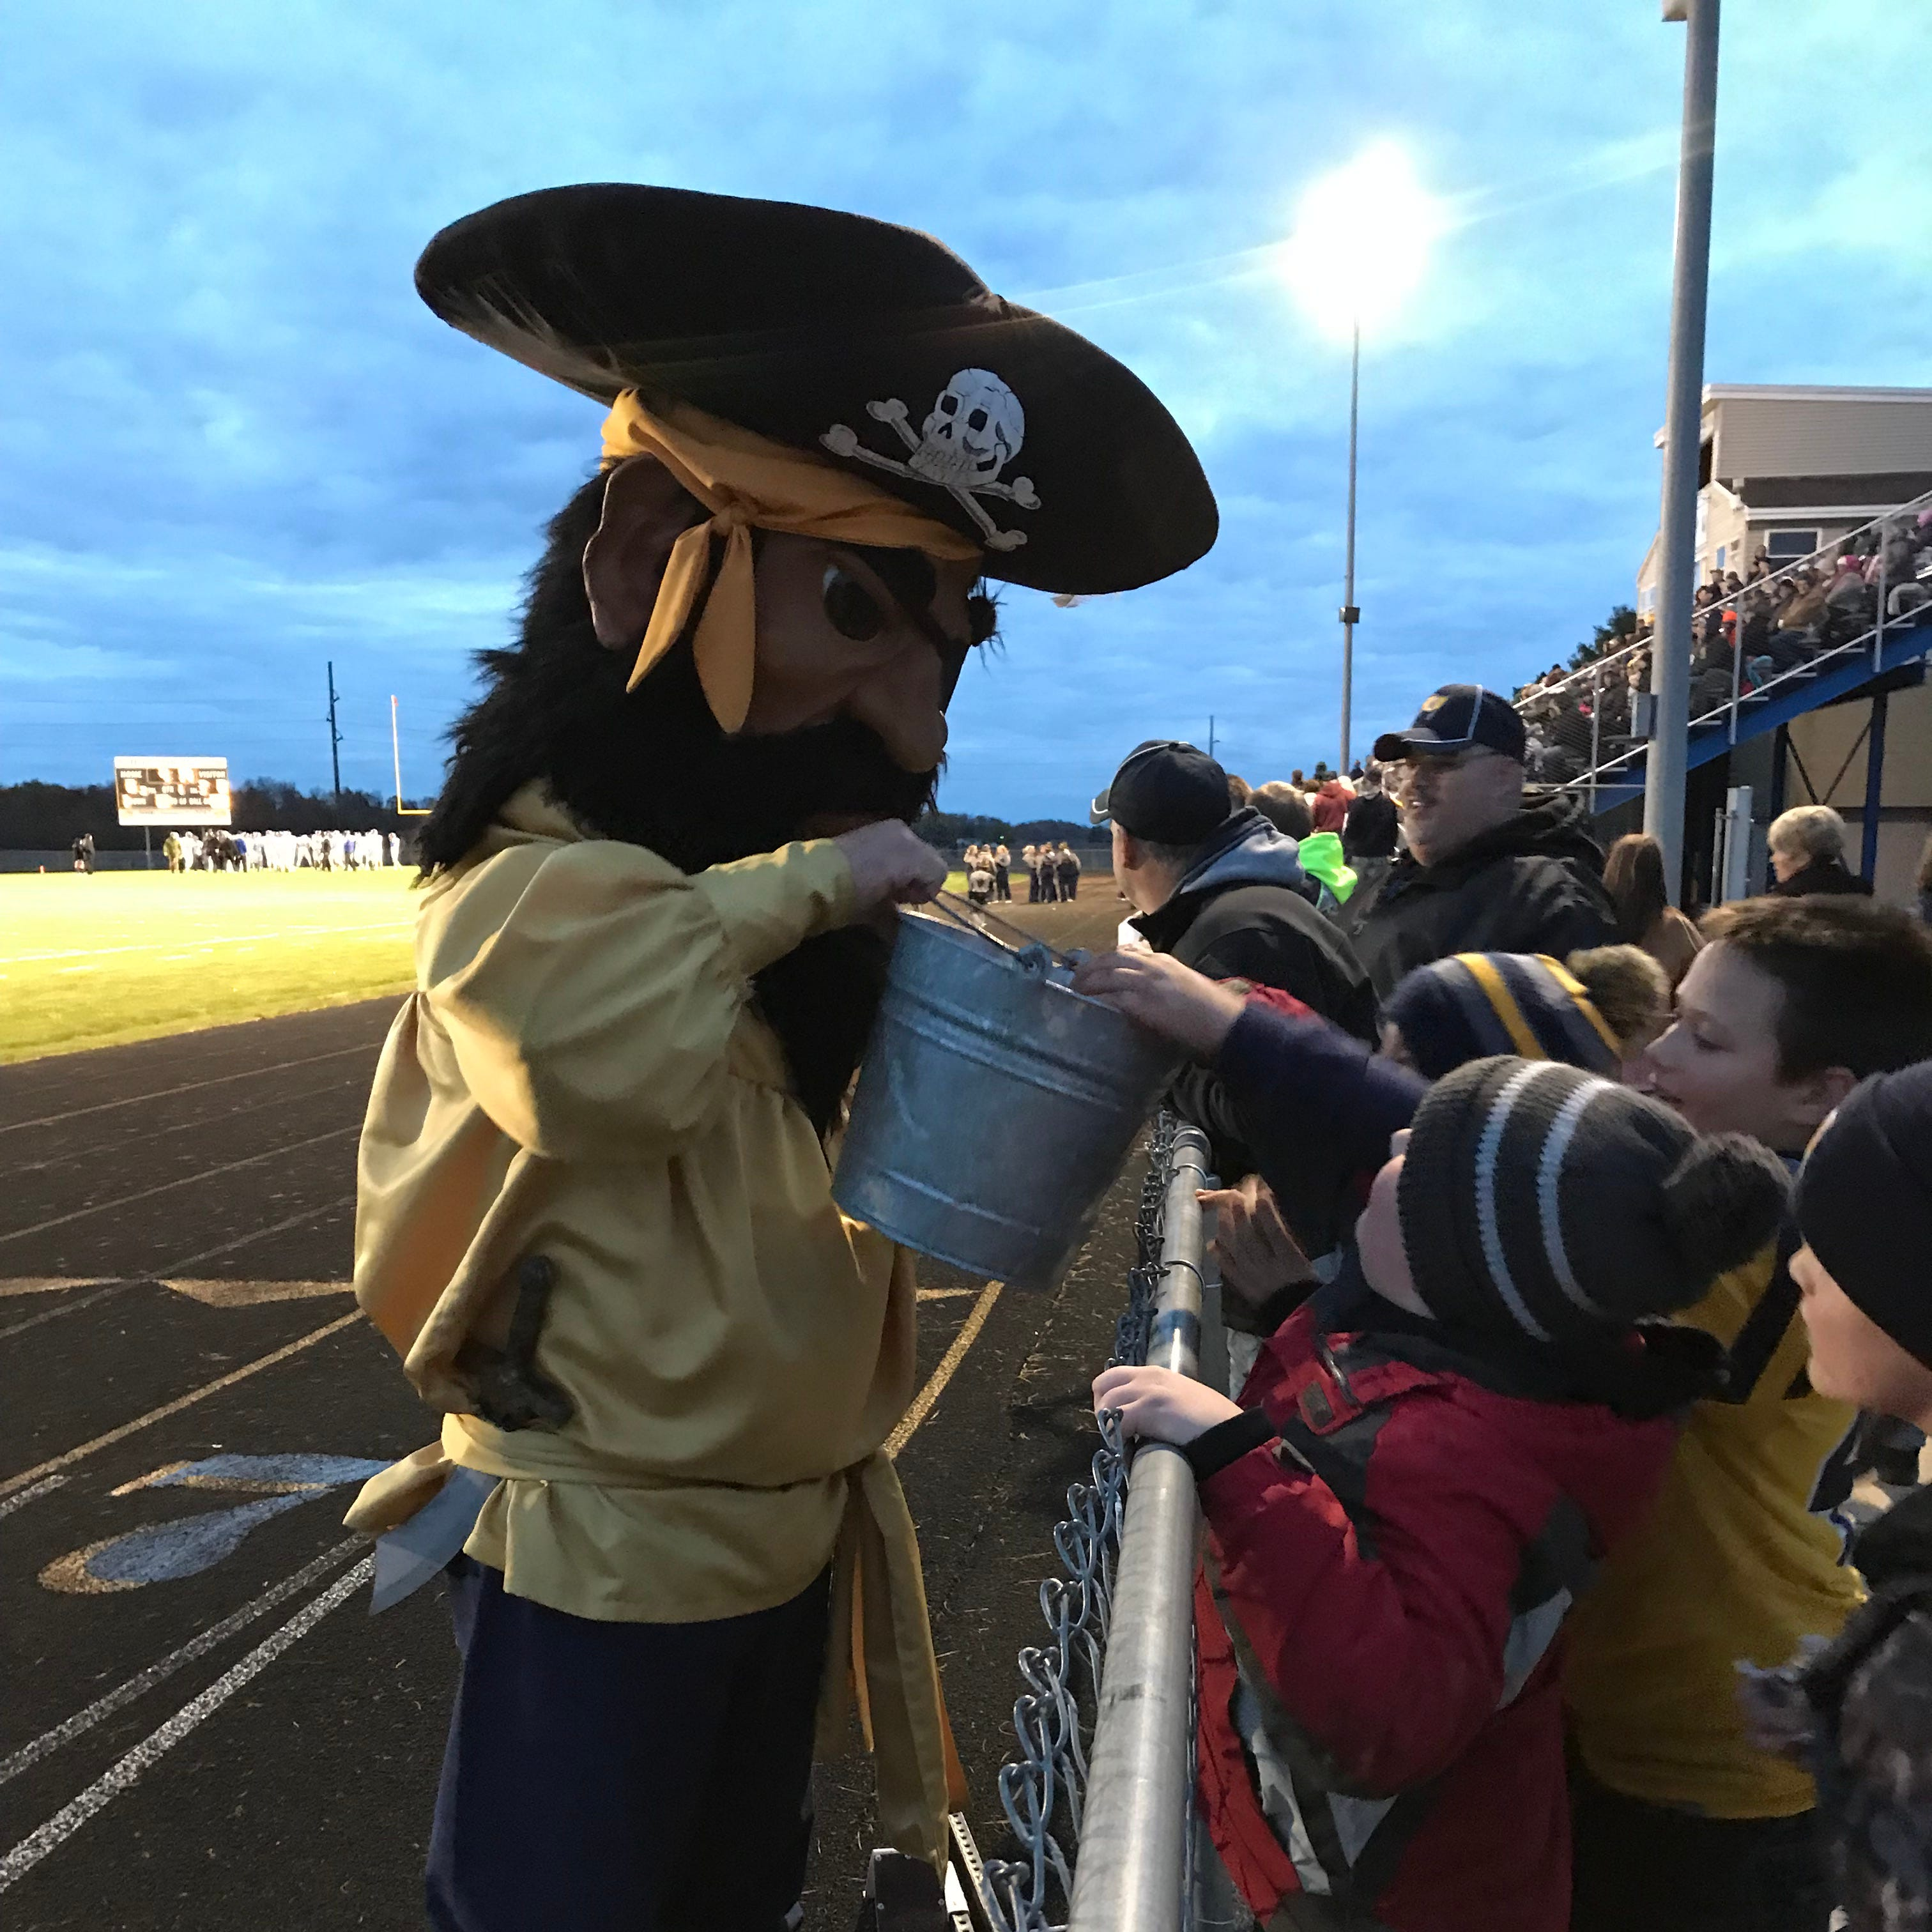 Pirate Pete is a mainstay at Pewamo-Westphalia High School sporting events, especially varsity football games. Randy Zenk, Pewamo's 54-year-old village president, has worn the costume at games for the past 13 years.